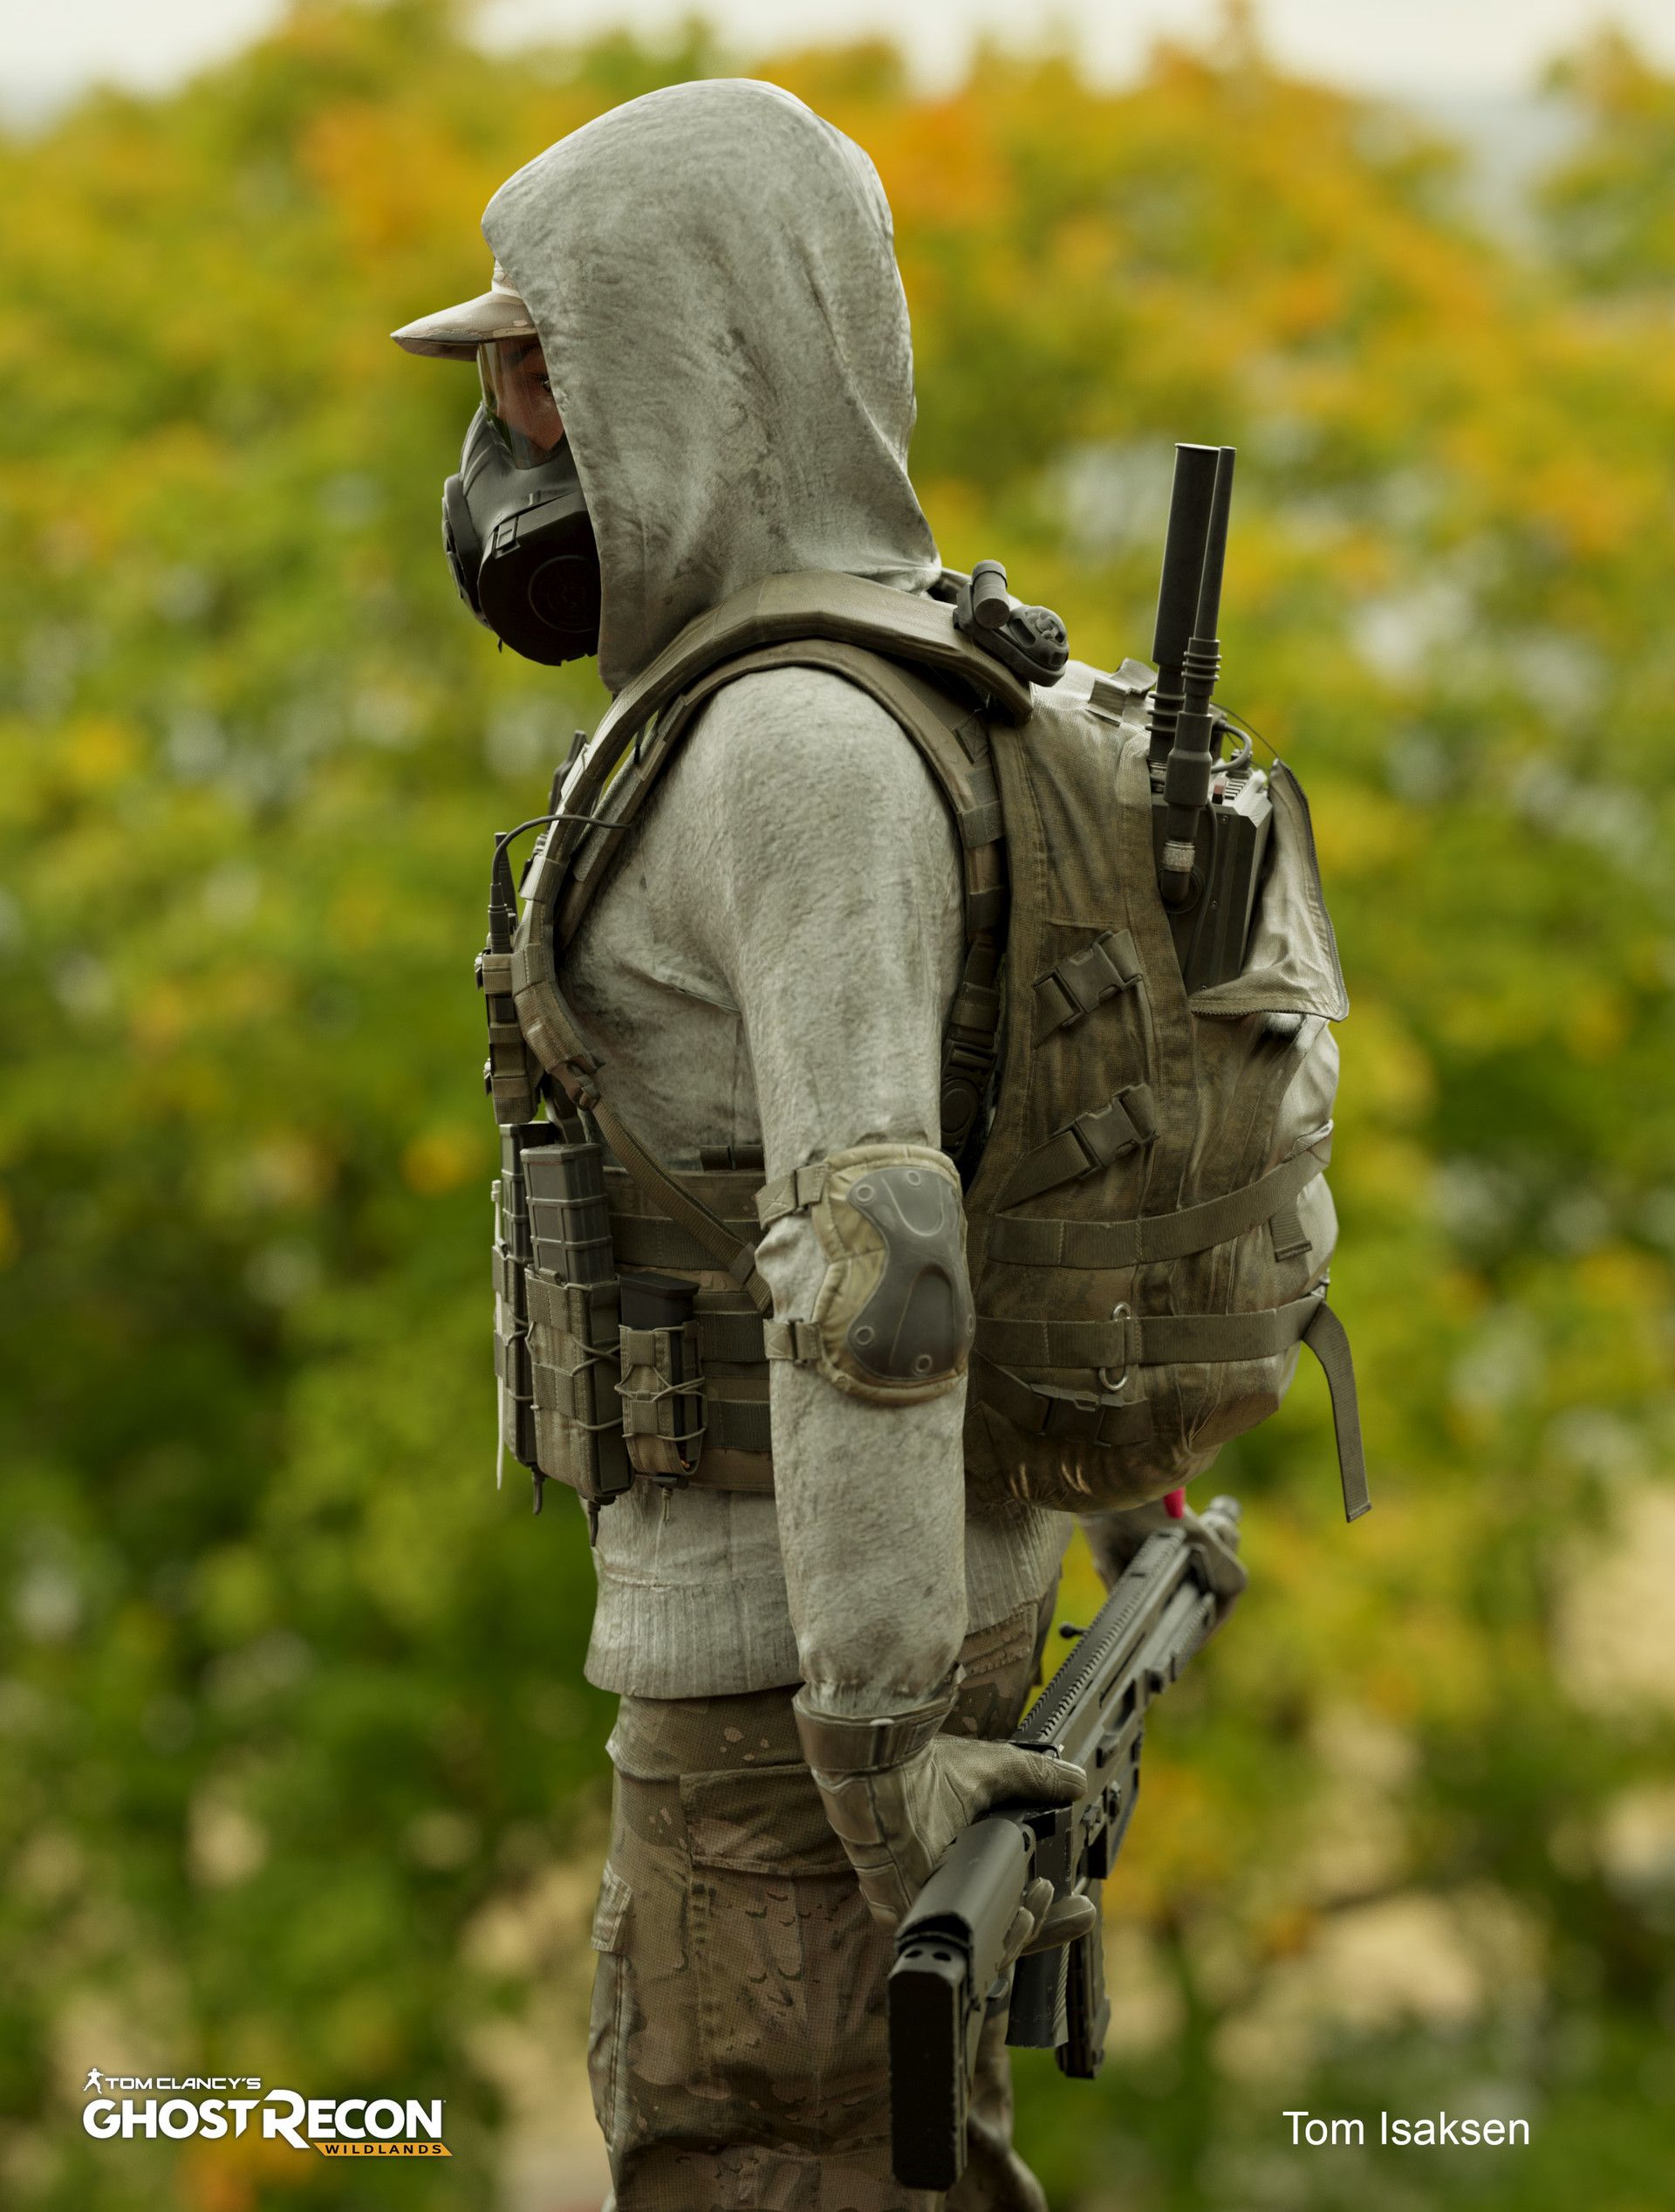 Ghost recon | 1/6 scale figures | Pinterest | Airsoft, Military ...